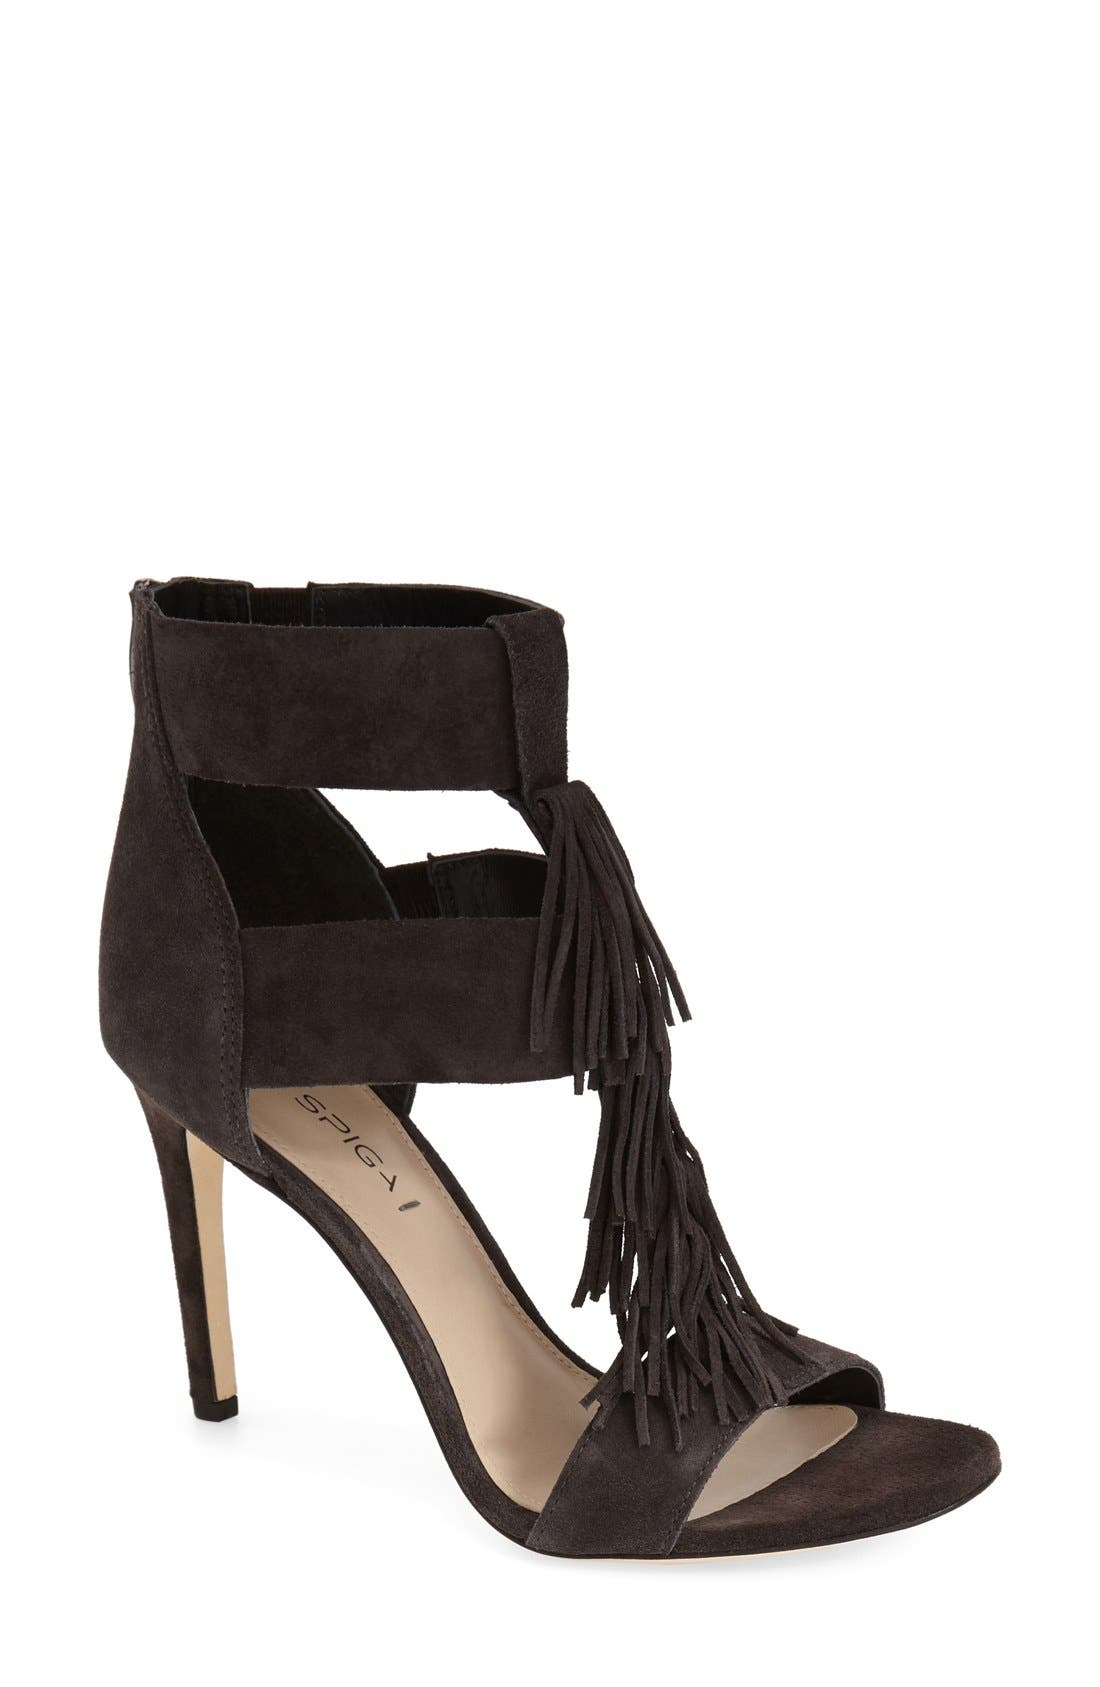 Alternate Image 1 Selected - Via Spiga 'Eilish' Fringe Sandal (Women)